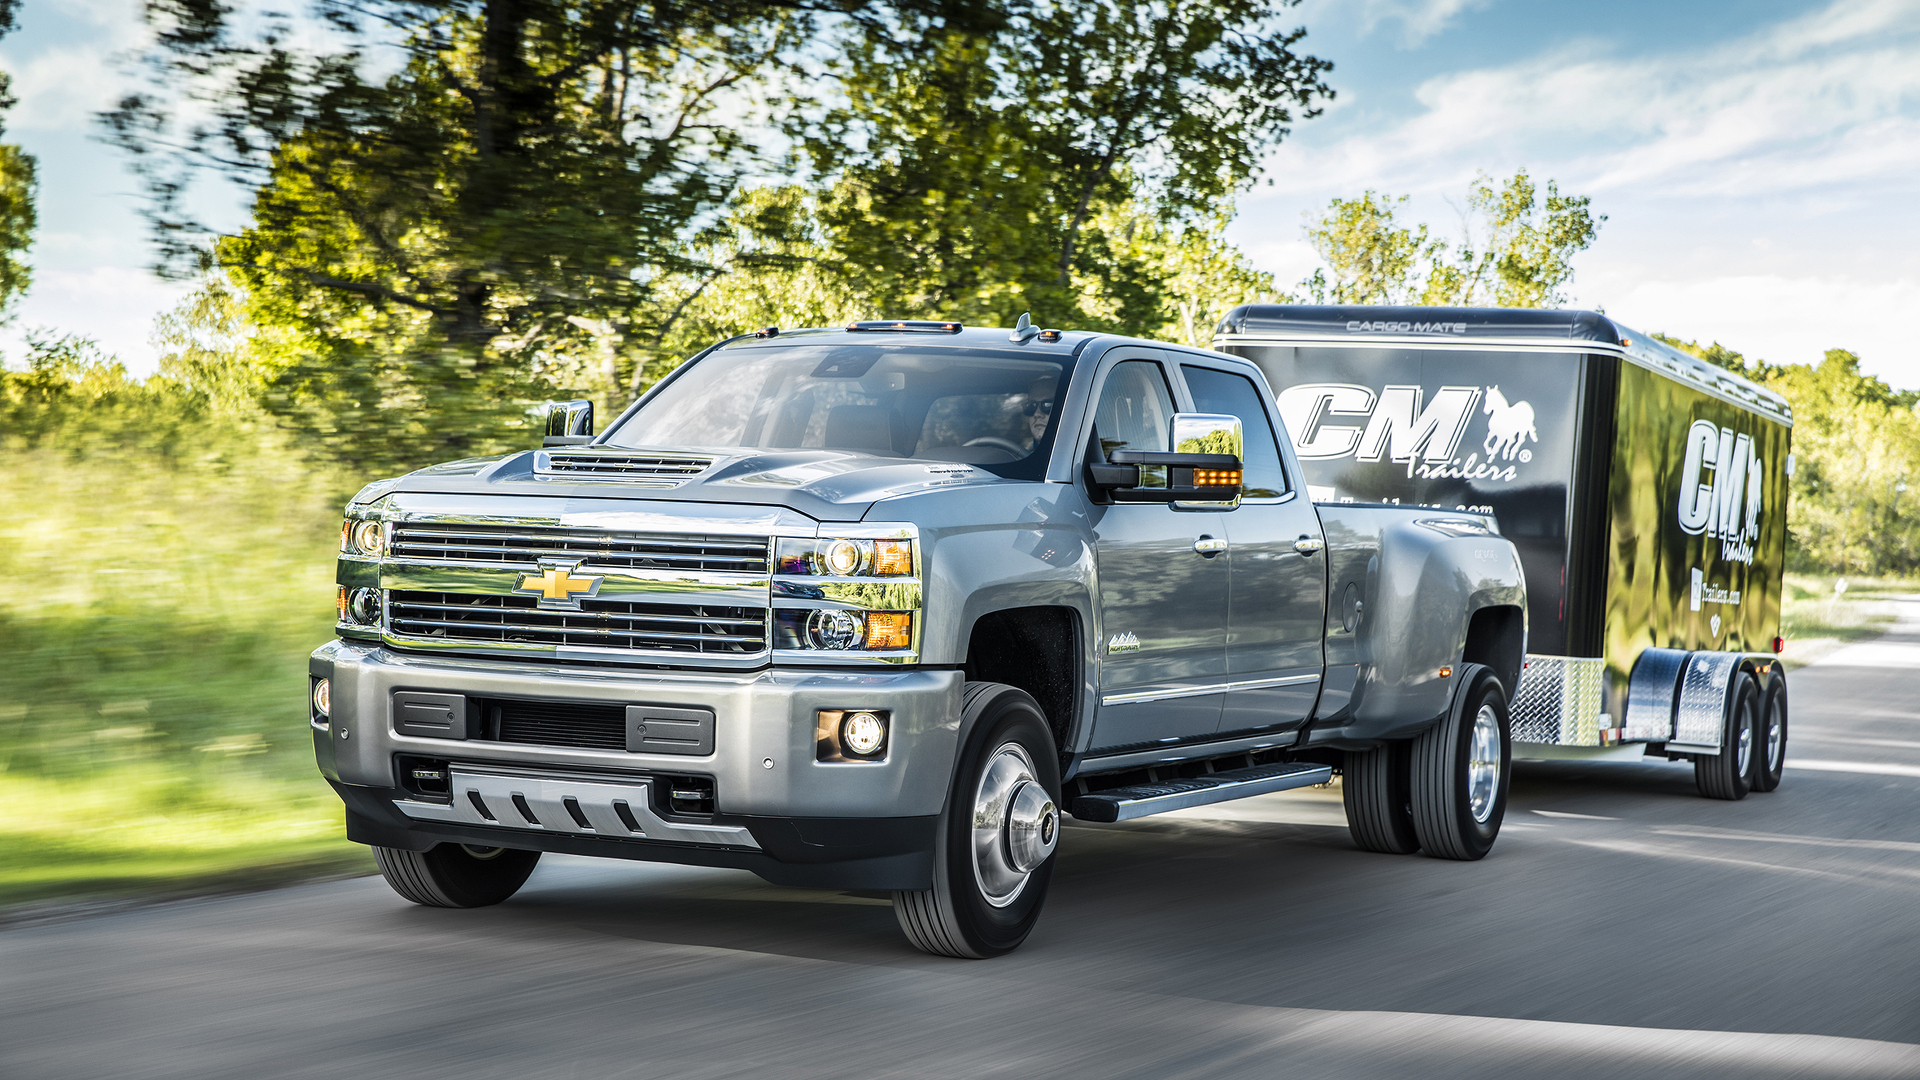 2017 Chevy Silverado Hd Best Cars And Car News | 2017 - 2018 Best Cars Reviews